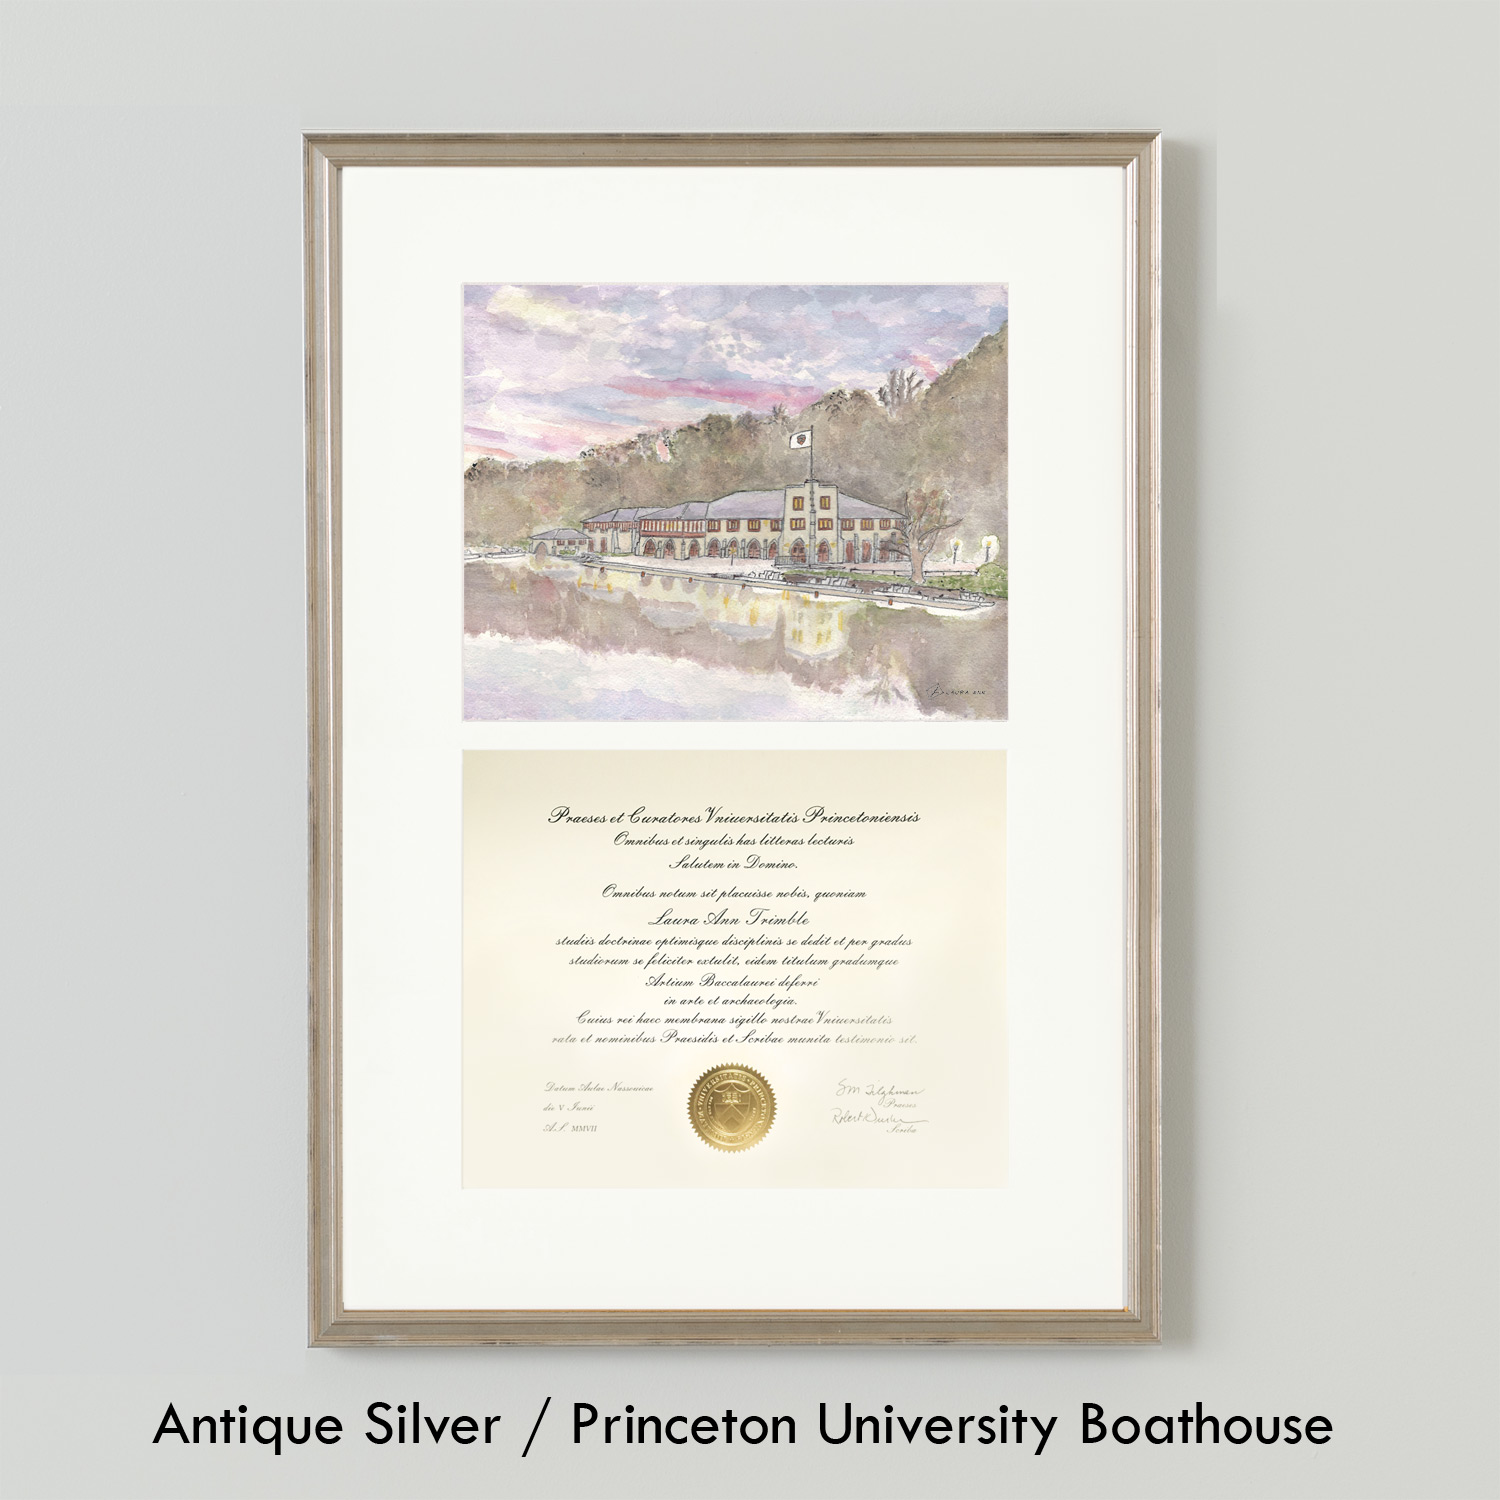 LAURA-ANN_Simply-Framed_Antique-Silver_Princeton-University-Boathouse.jpg